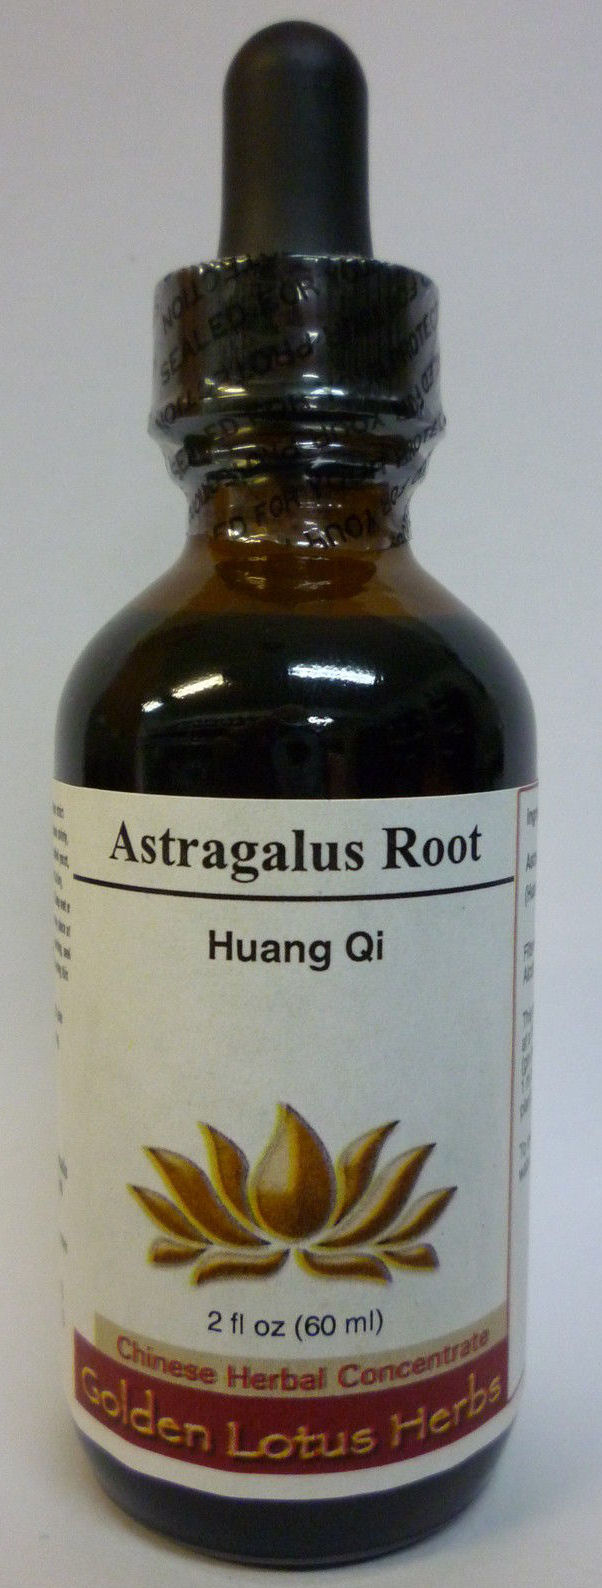 Astragalus Root / Huang Qi Single Herb Alcohol Fluid Extract 4 oz.: GL